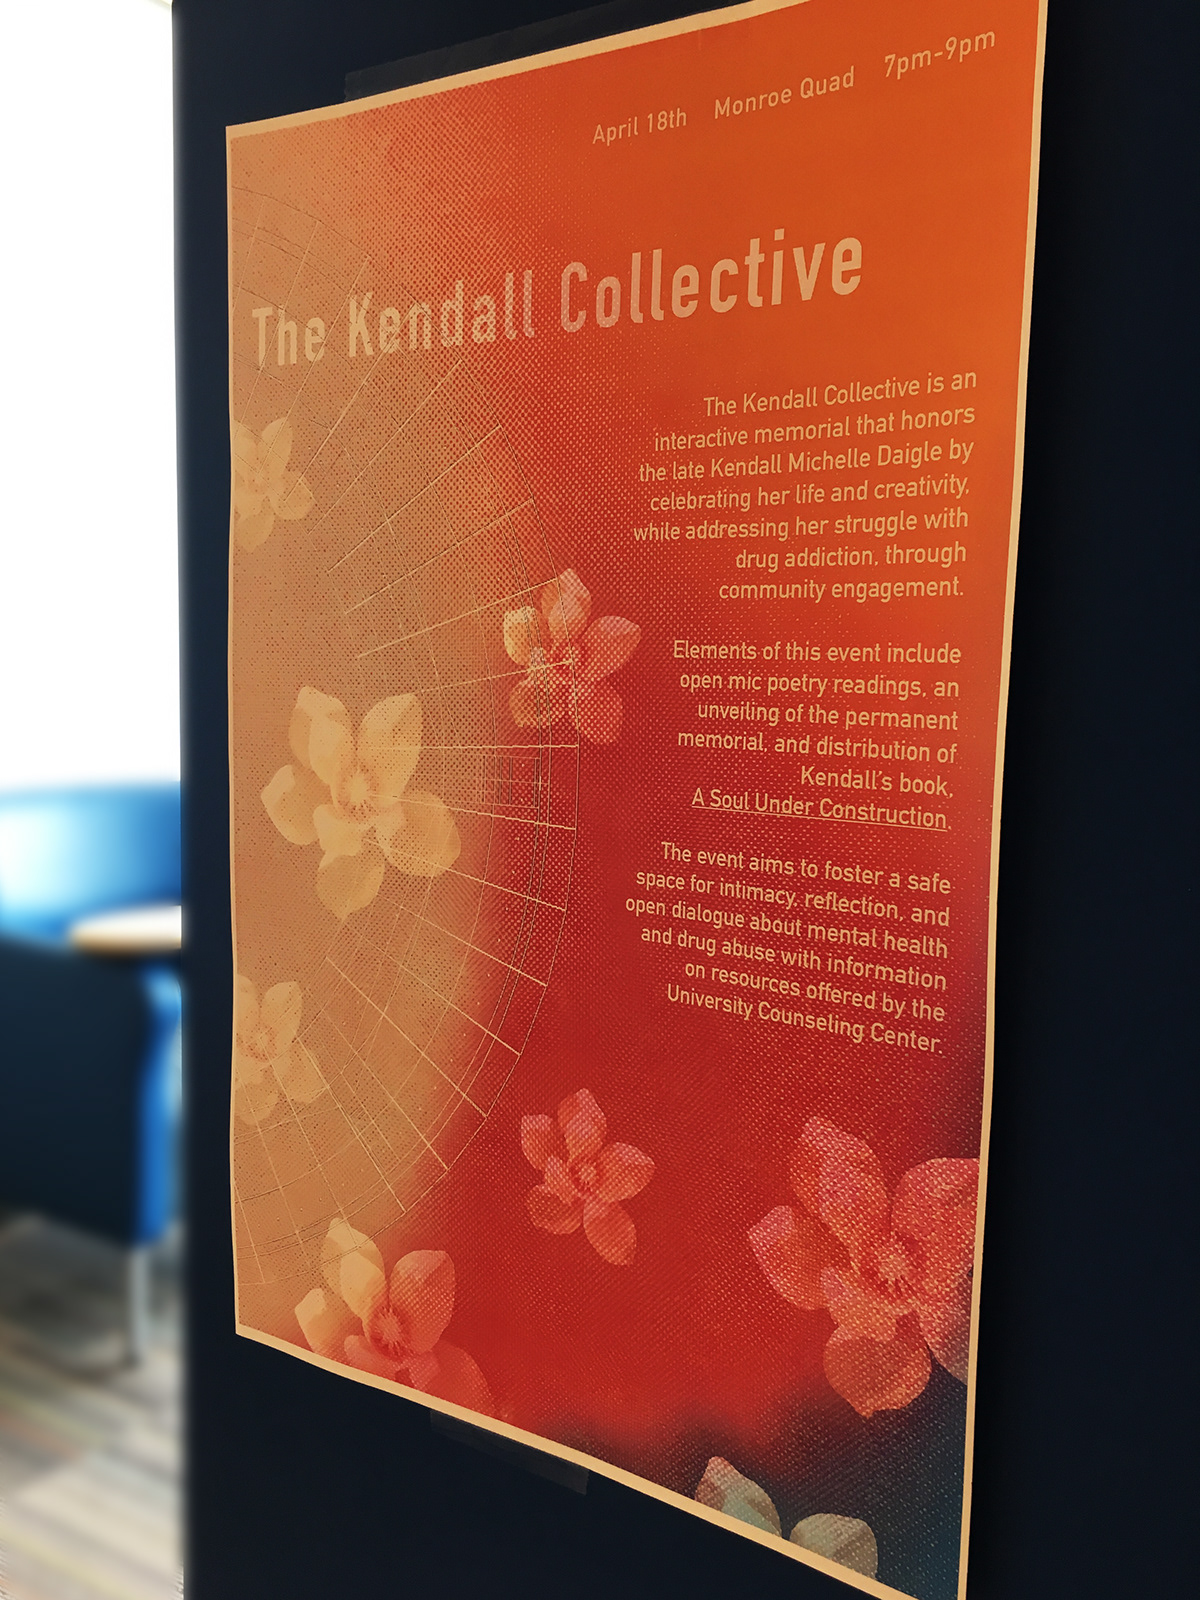 The Kendall Collective on Behance